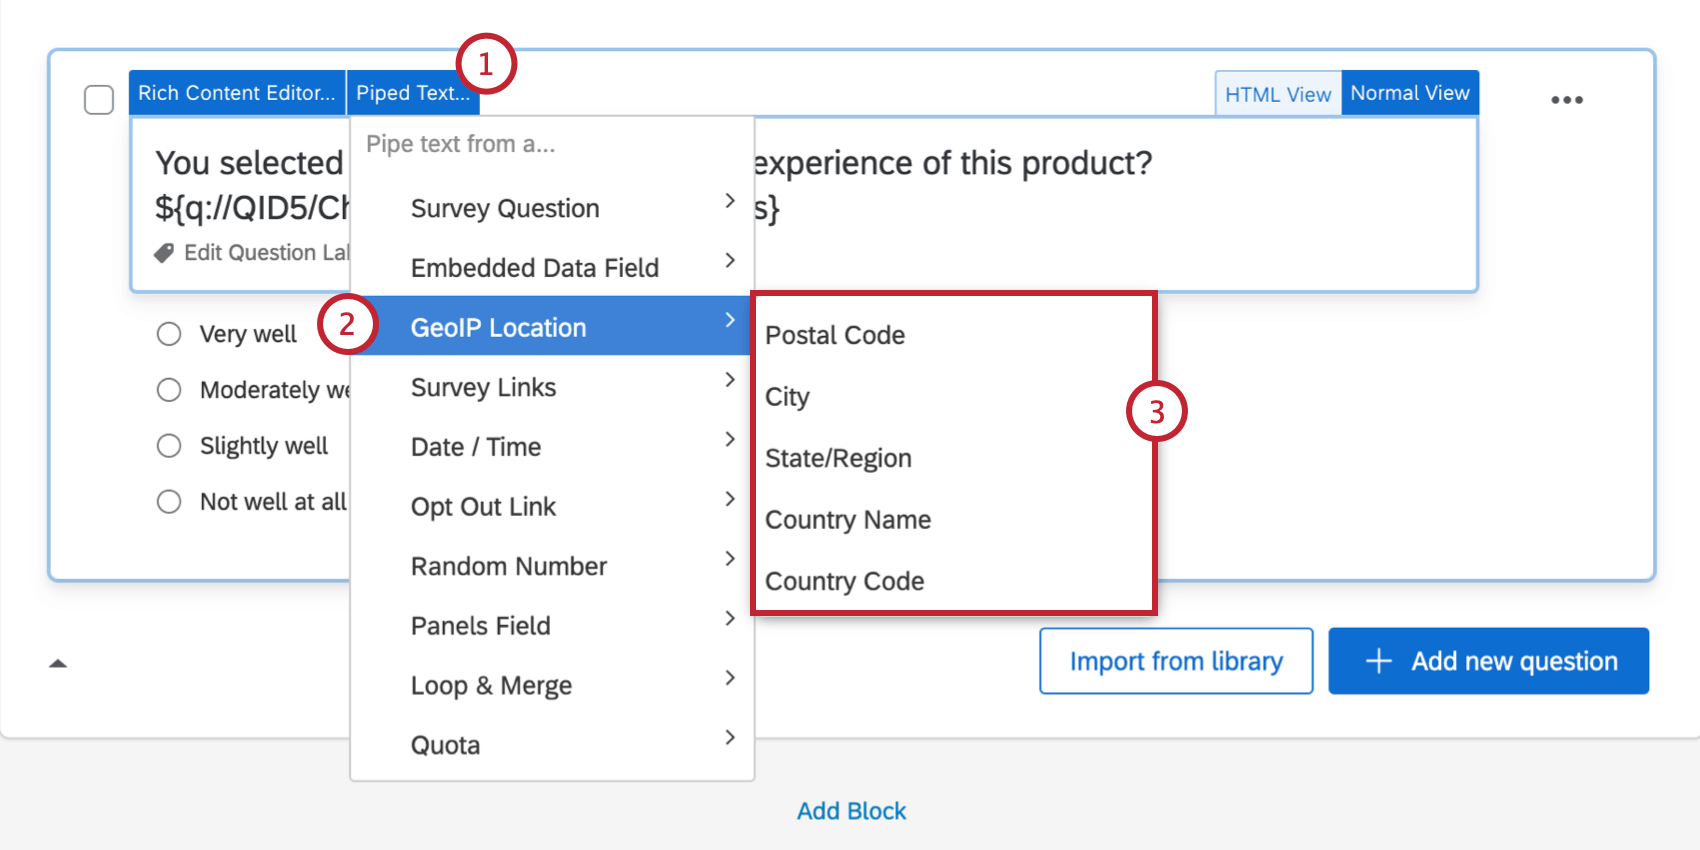 GeoIP Piped Text menu with postal code, city, state region, area code, country name, and country code options